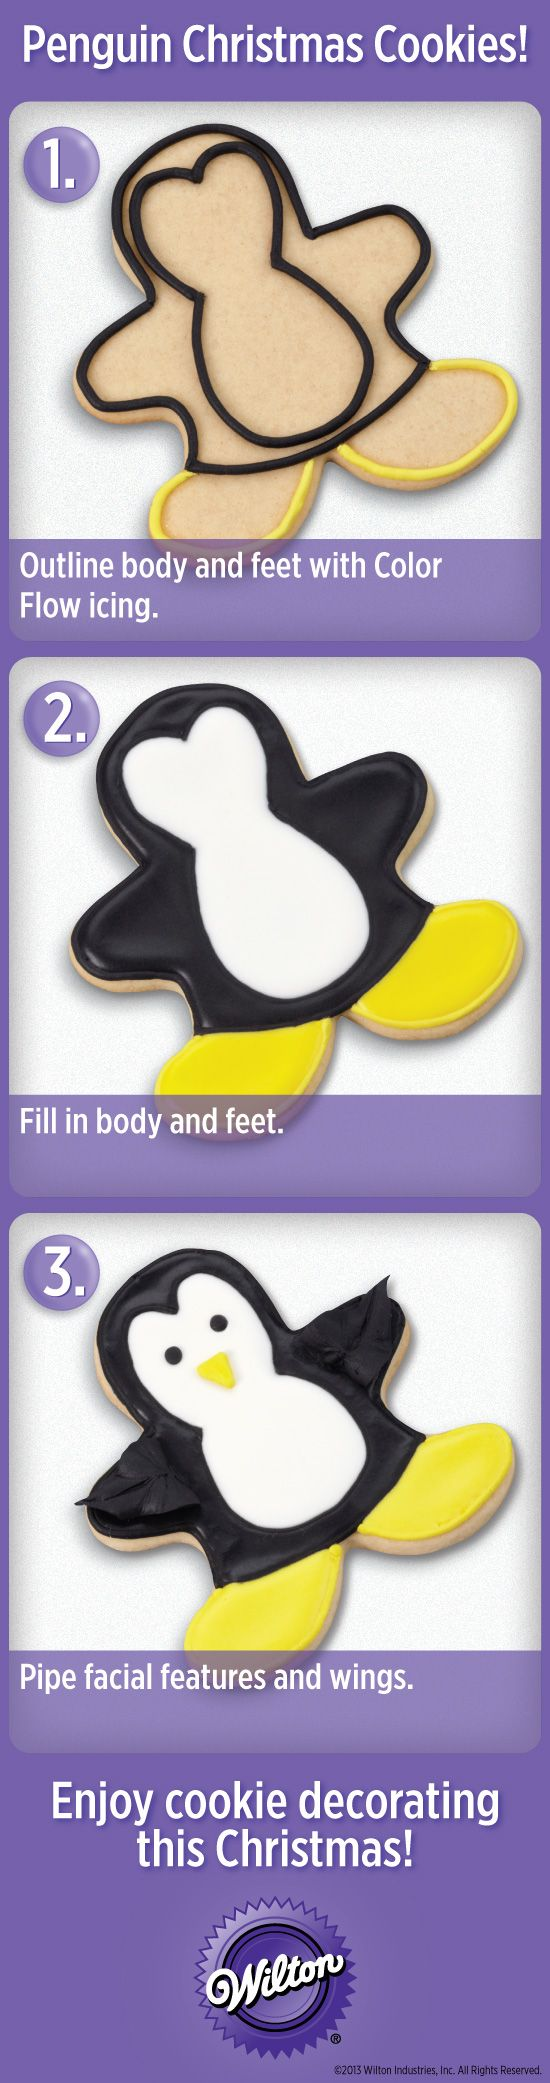 Make cute Penguin holiday cookies with easy steps from @Wilton Cake Decorating #wiltoncookieelf